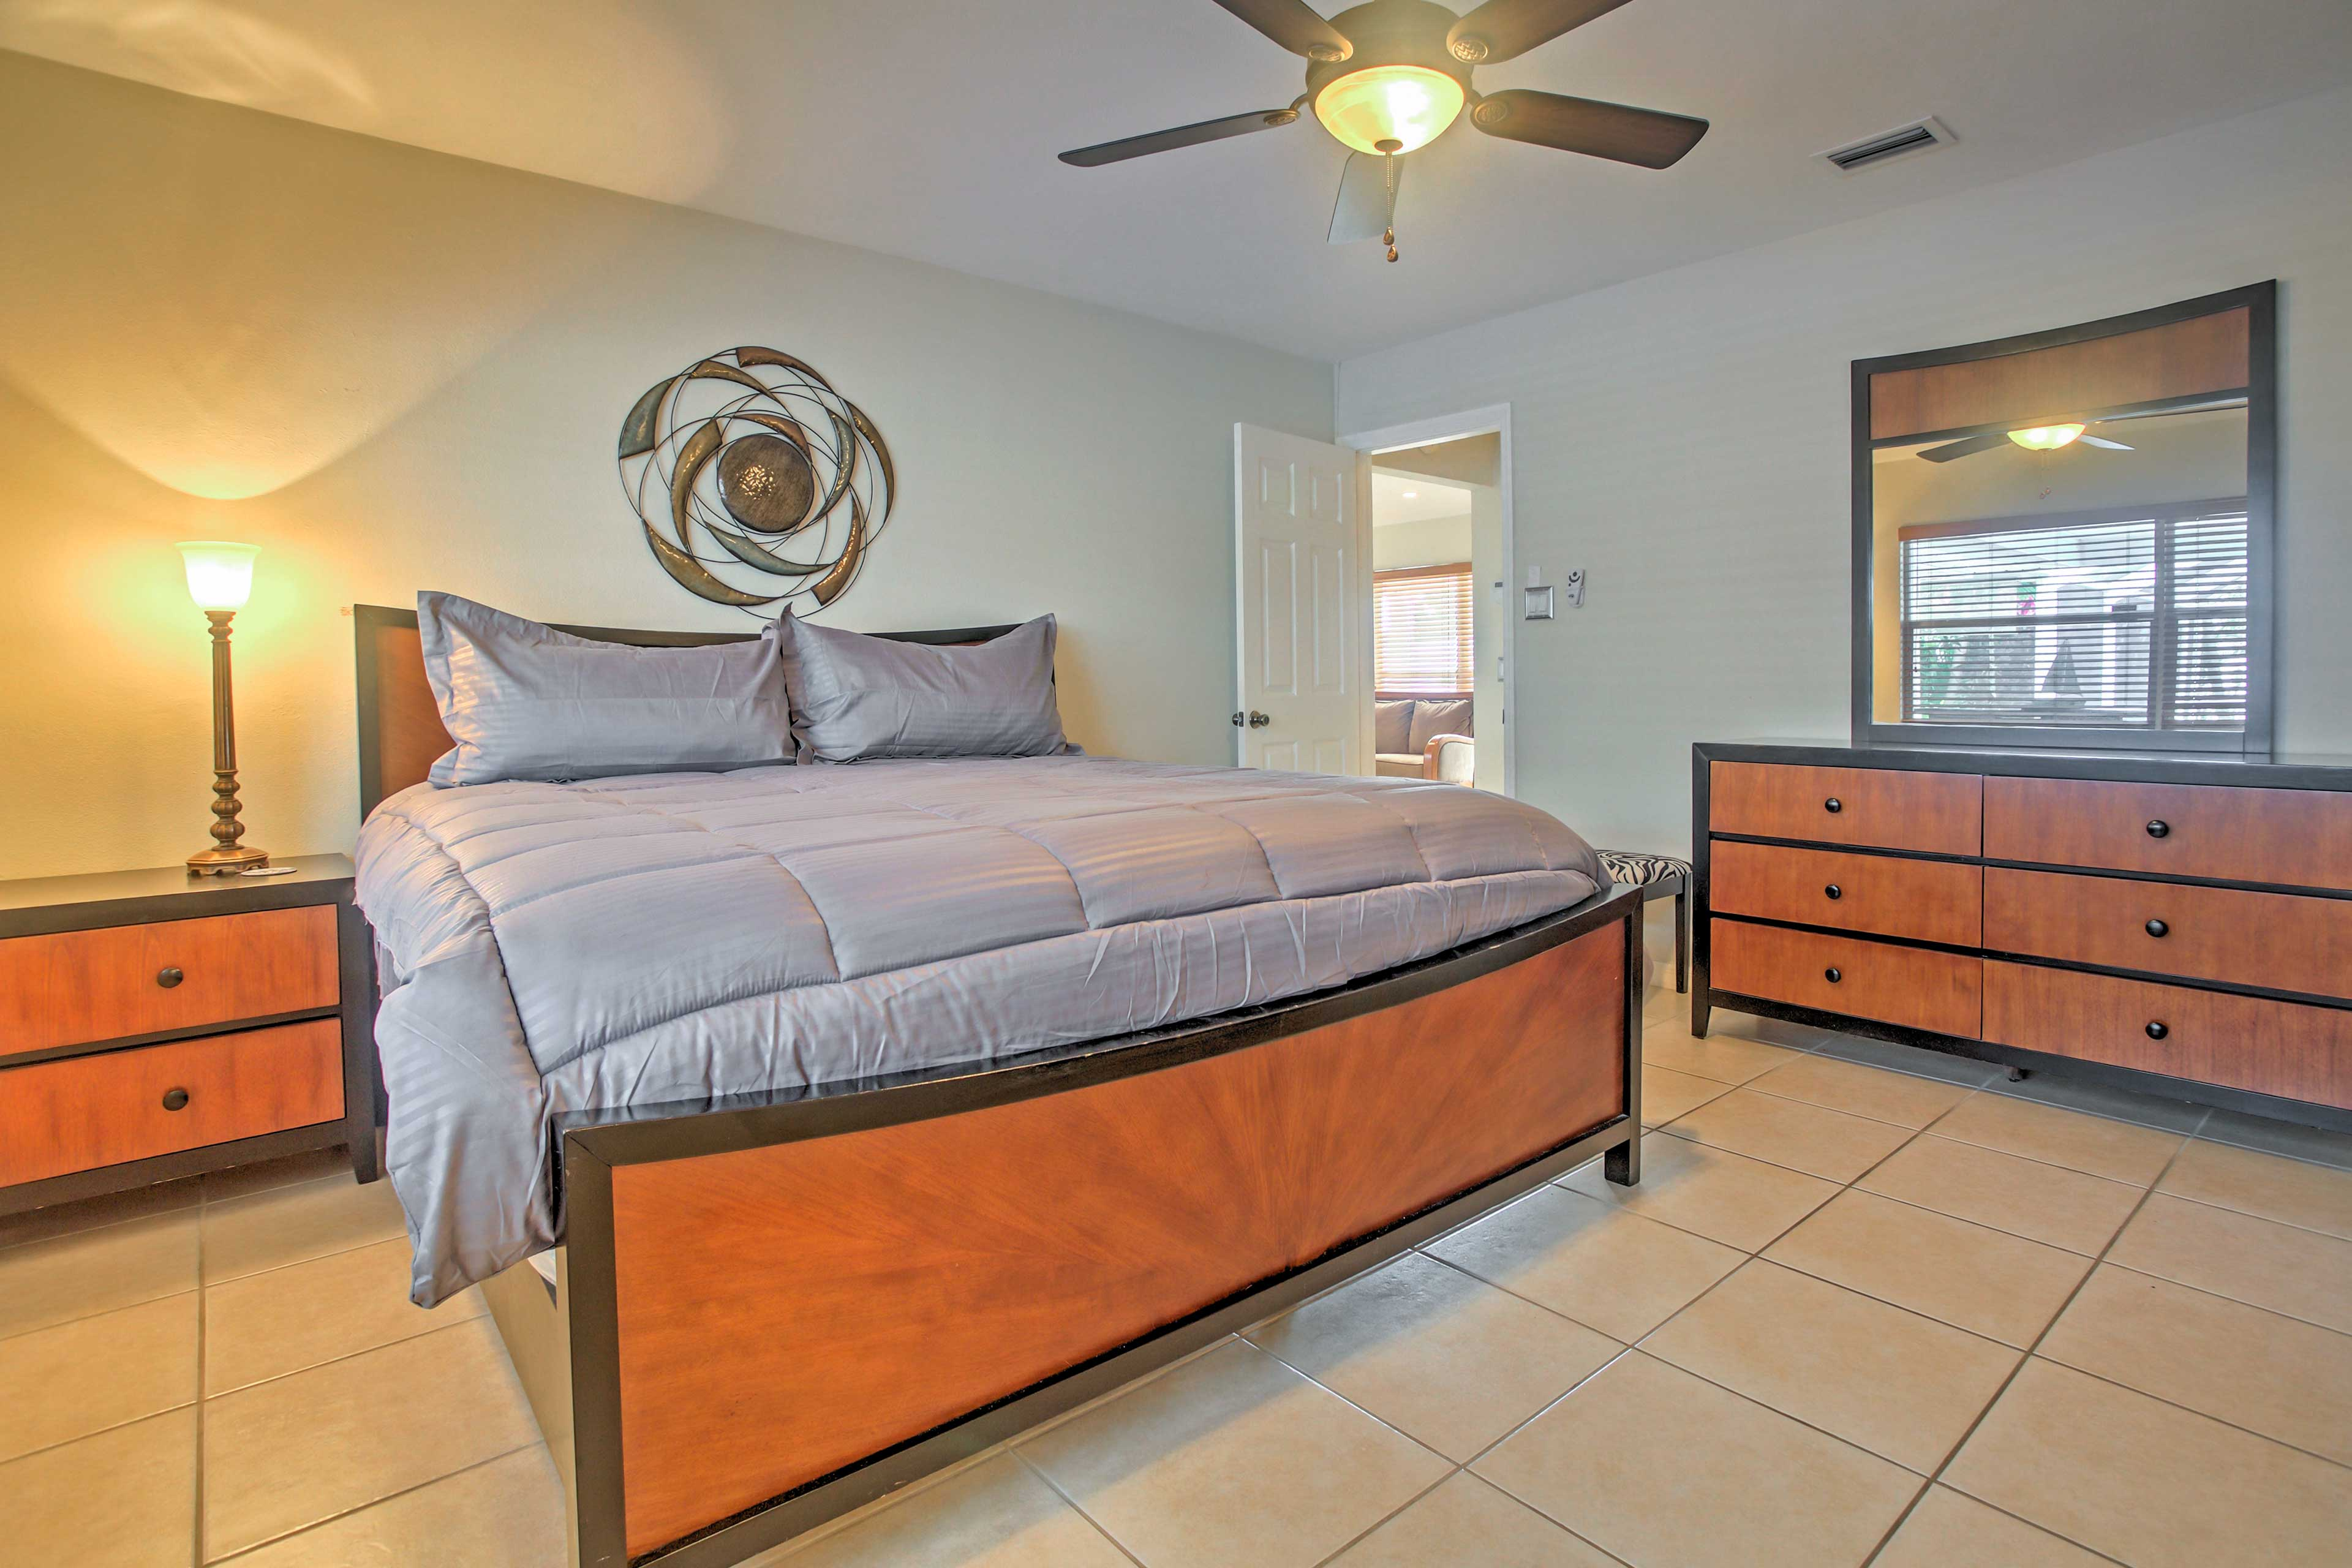 You'll enjoy great nights of sleep in this comfortable king-sized bed.